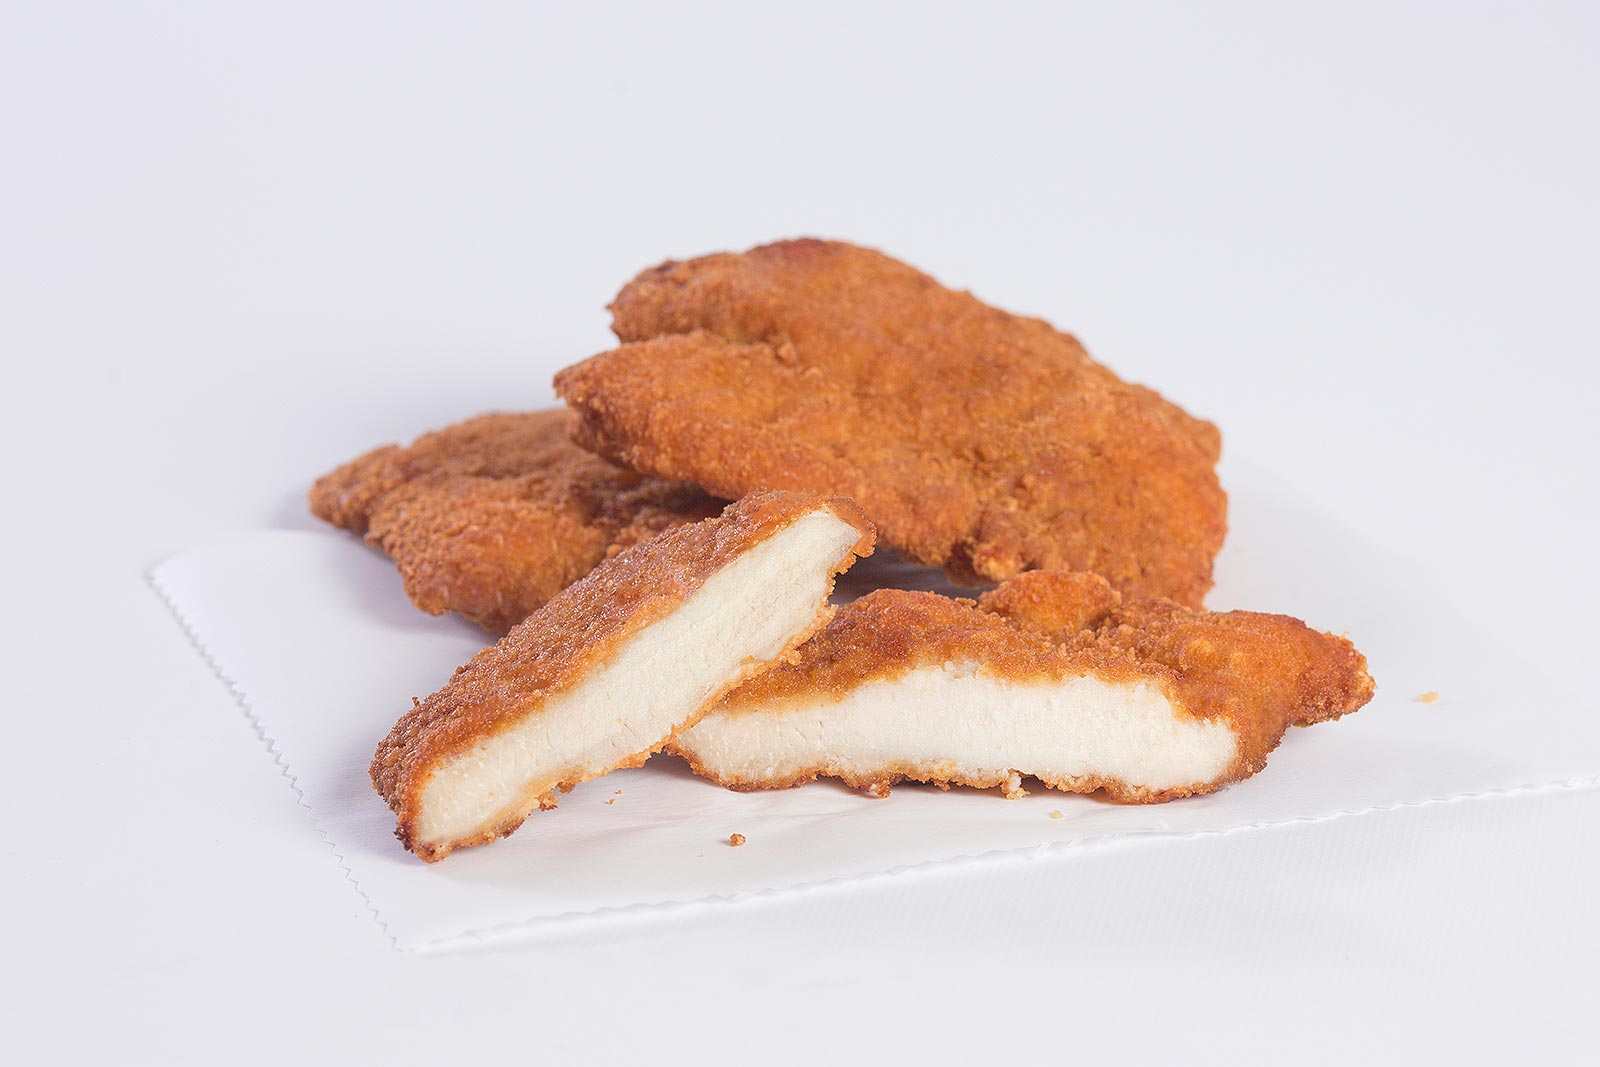 Bresteak Buttermilk Breaded Fillet image